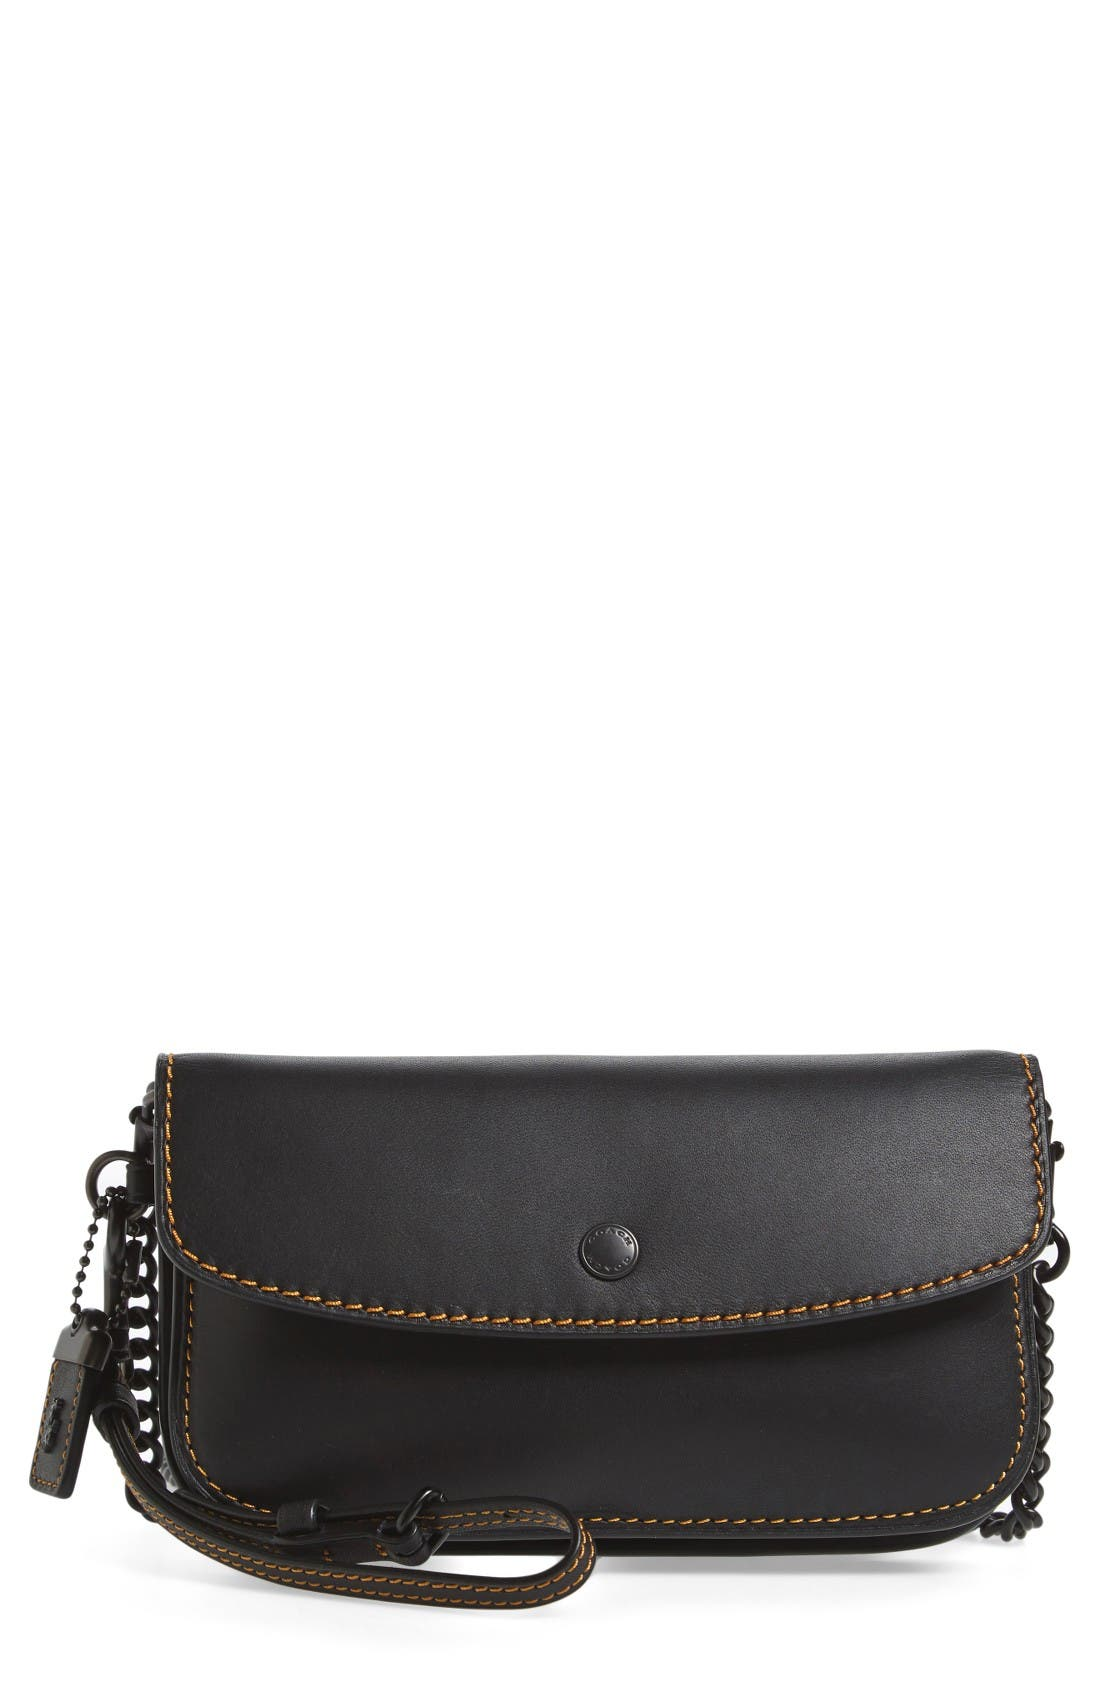 Alternate Image 1 Selected - COACH 1941 Leather Clutch